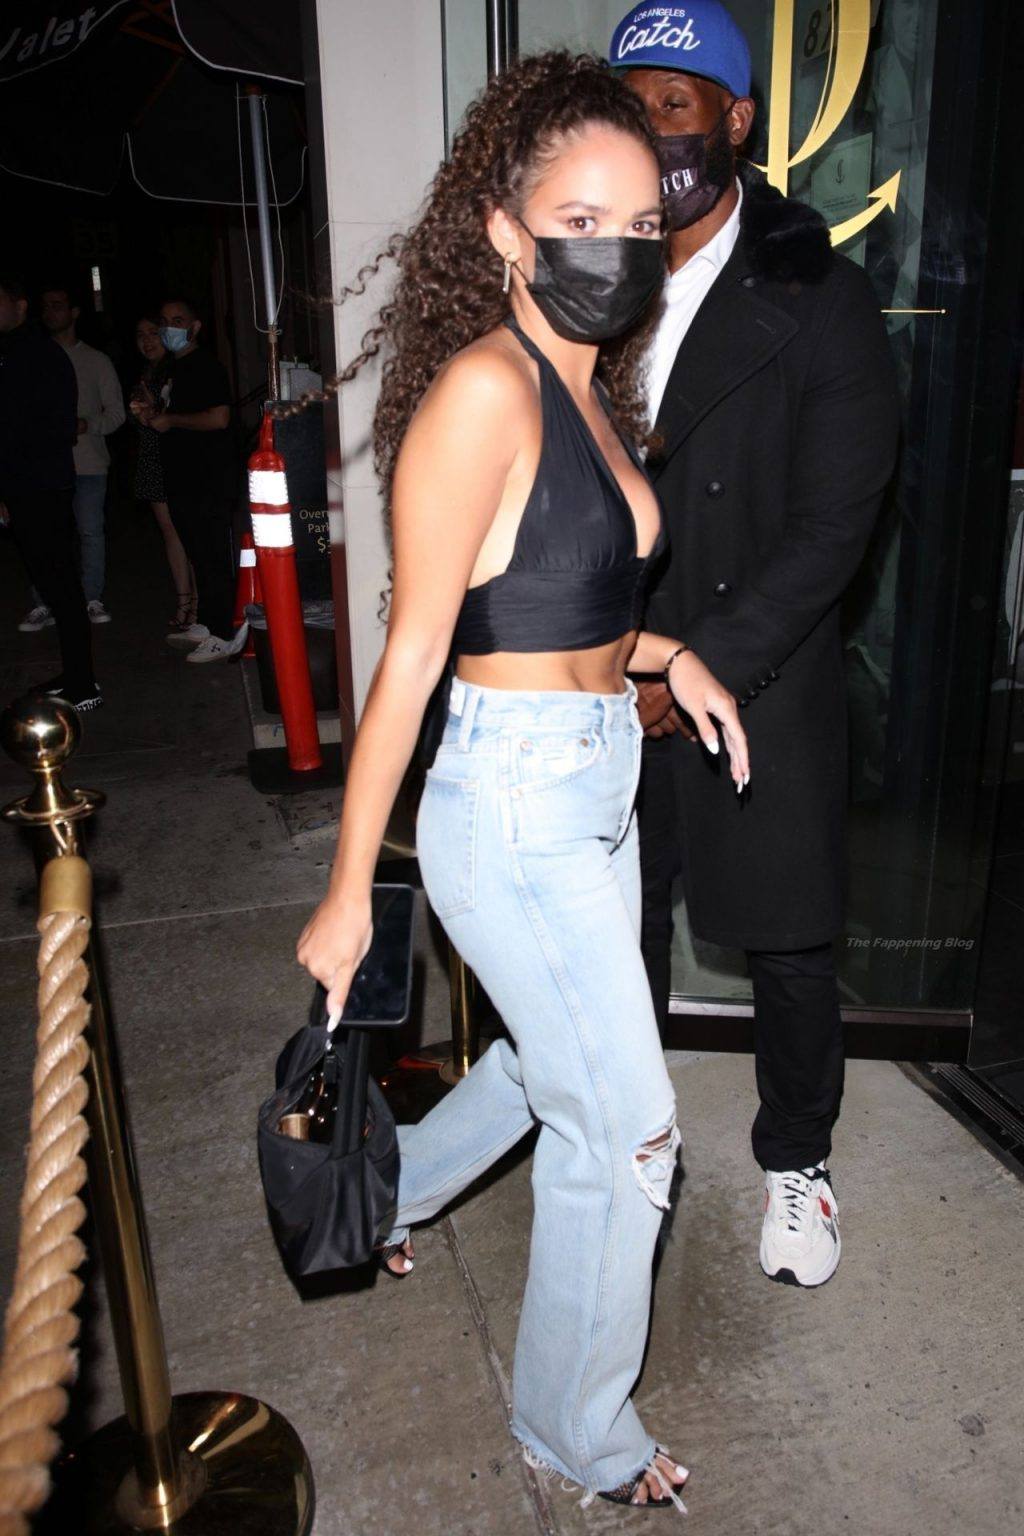 Madison Pettis Shows Off Her Snatched Waist and Nice Cleavage Arriving at Catch LA (18 Photos)